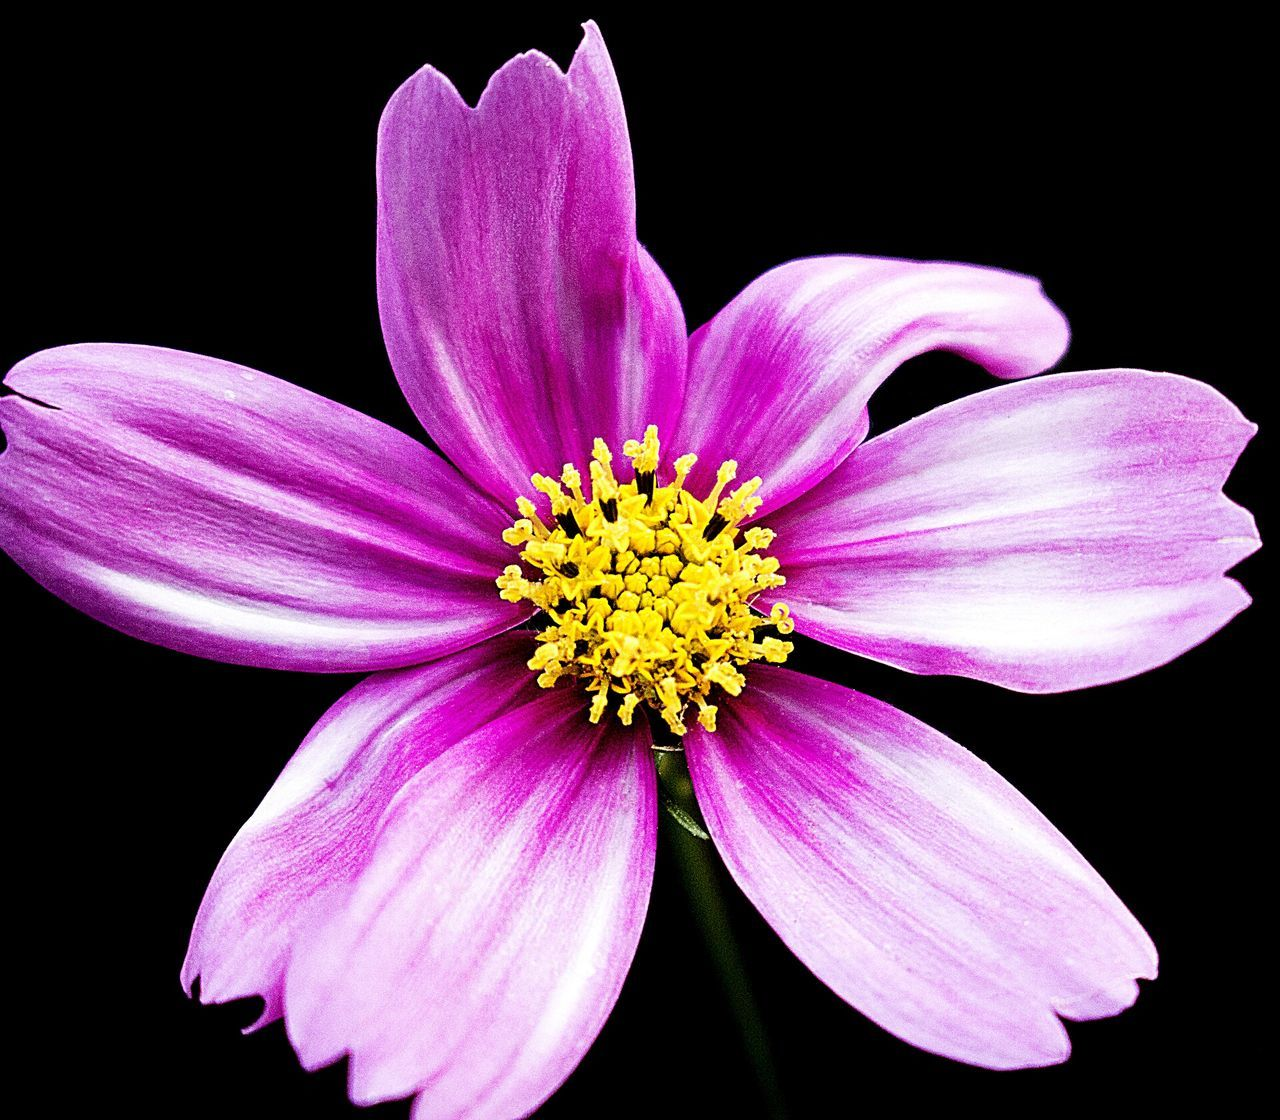 flower, petal, black background, flower head, fragility, studio shot, freshness, plant, pollen, beauty in nature, nature, purple, no people, growth, close-up, yellow, cosmos flower, stamen, blooming, outdoors, day, osteospermum